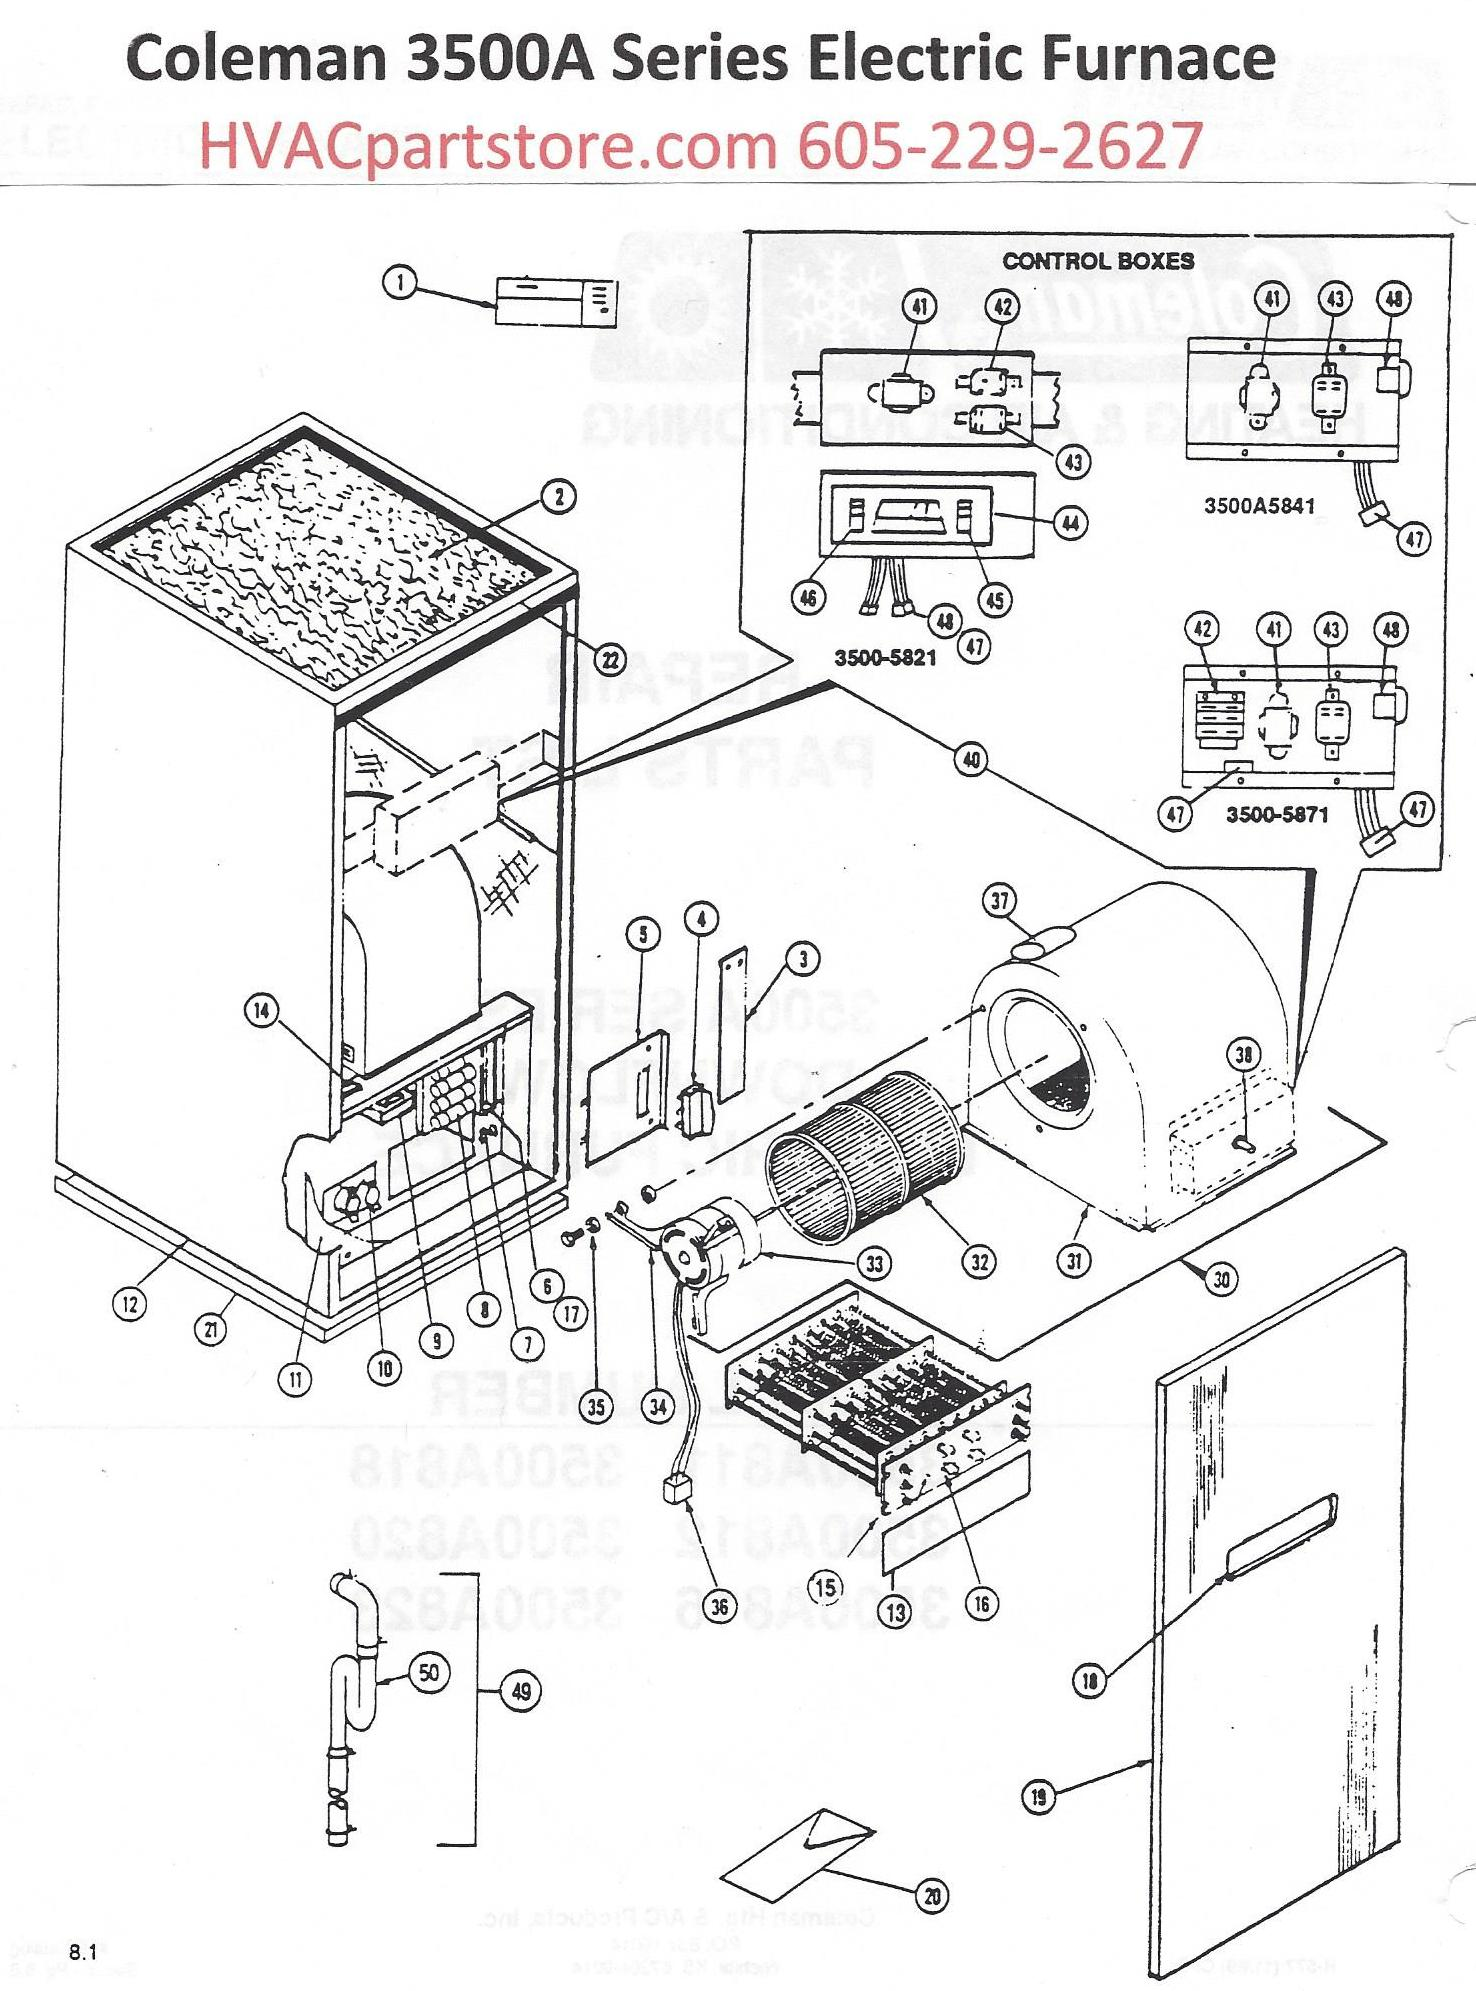 3500a816 coleman electric furnace parts hvacpartstore click here to view an installation manual which includes wiring diagrams